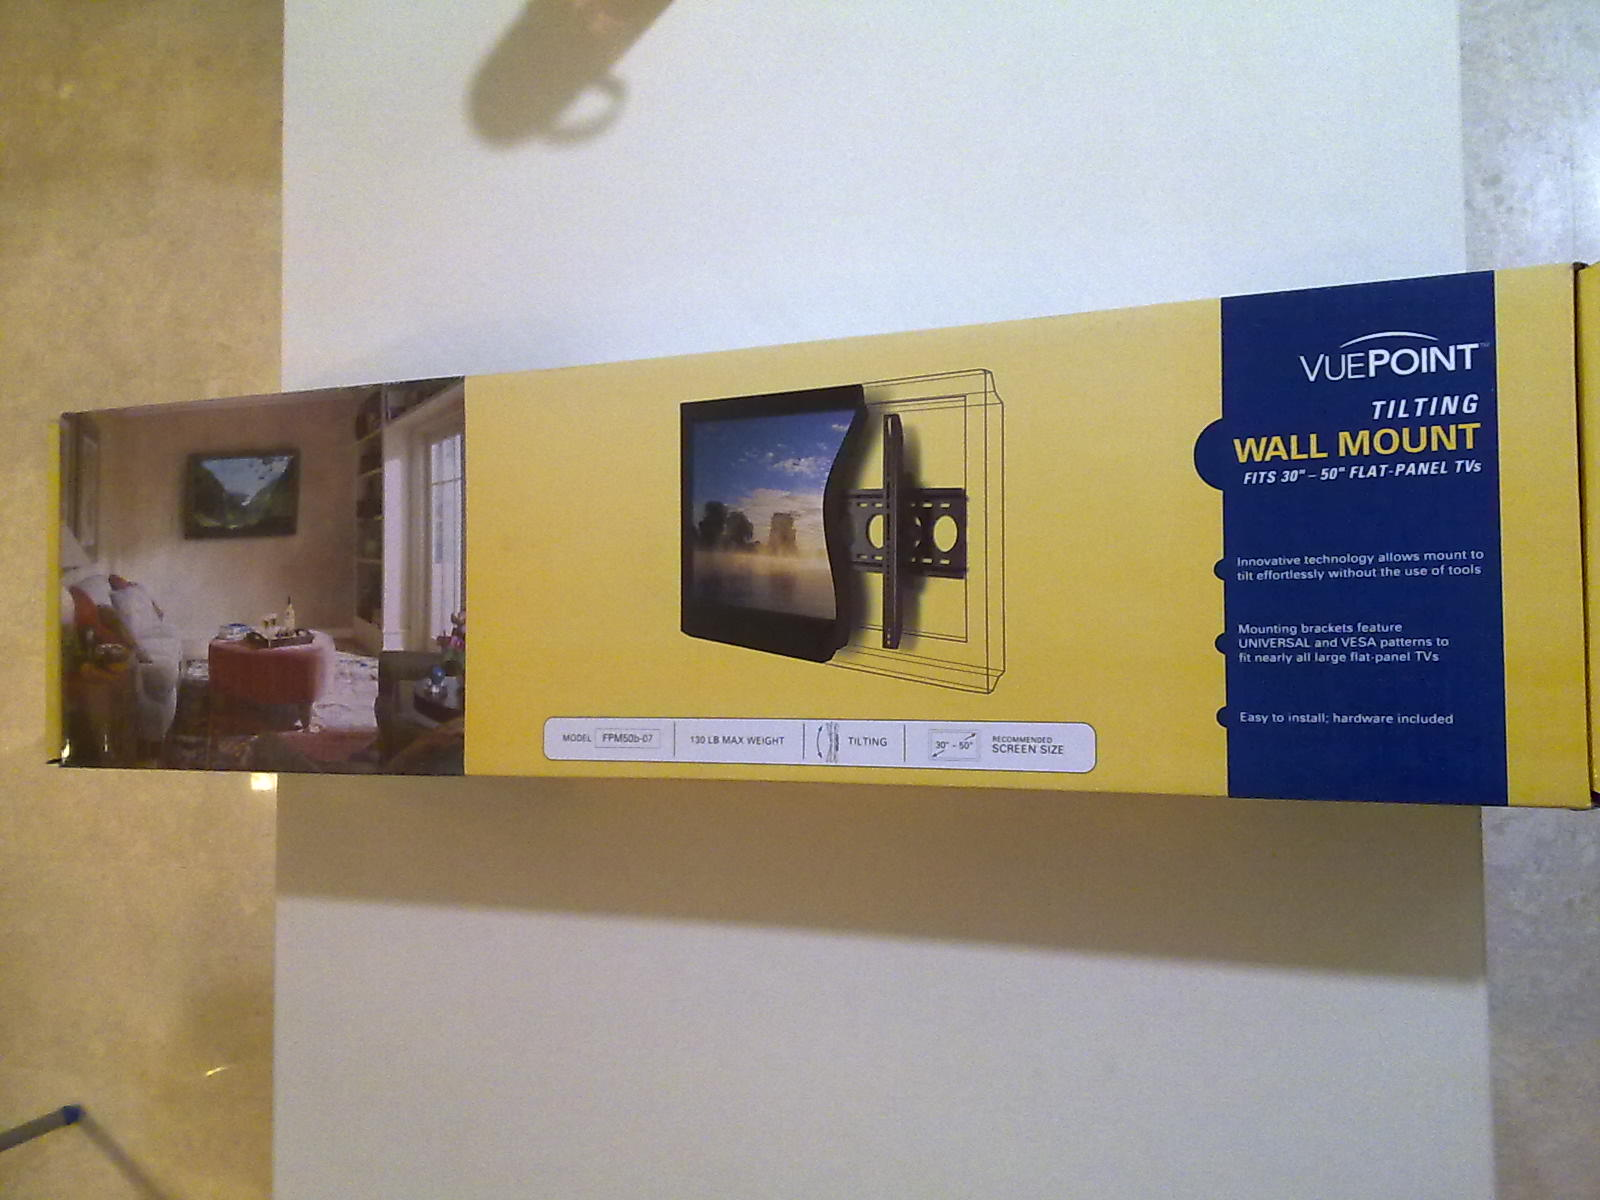 FOR SALE: -- -  VUEPOINT Tilting Wall Mount FPM50b-07 for Plasma, LED & LCD TV for sale